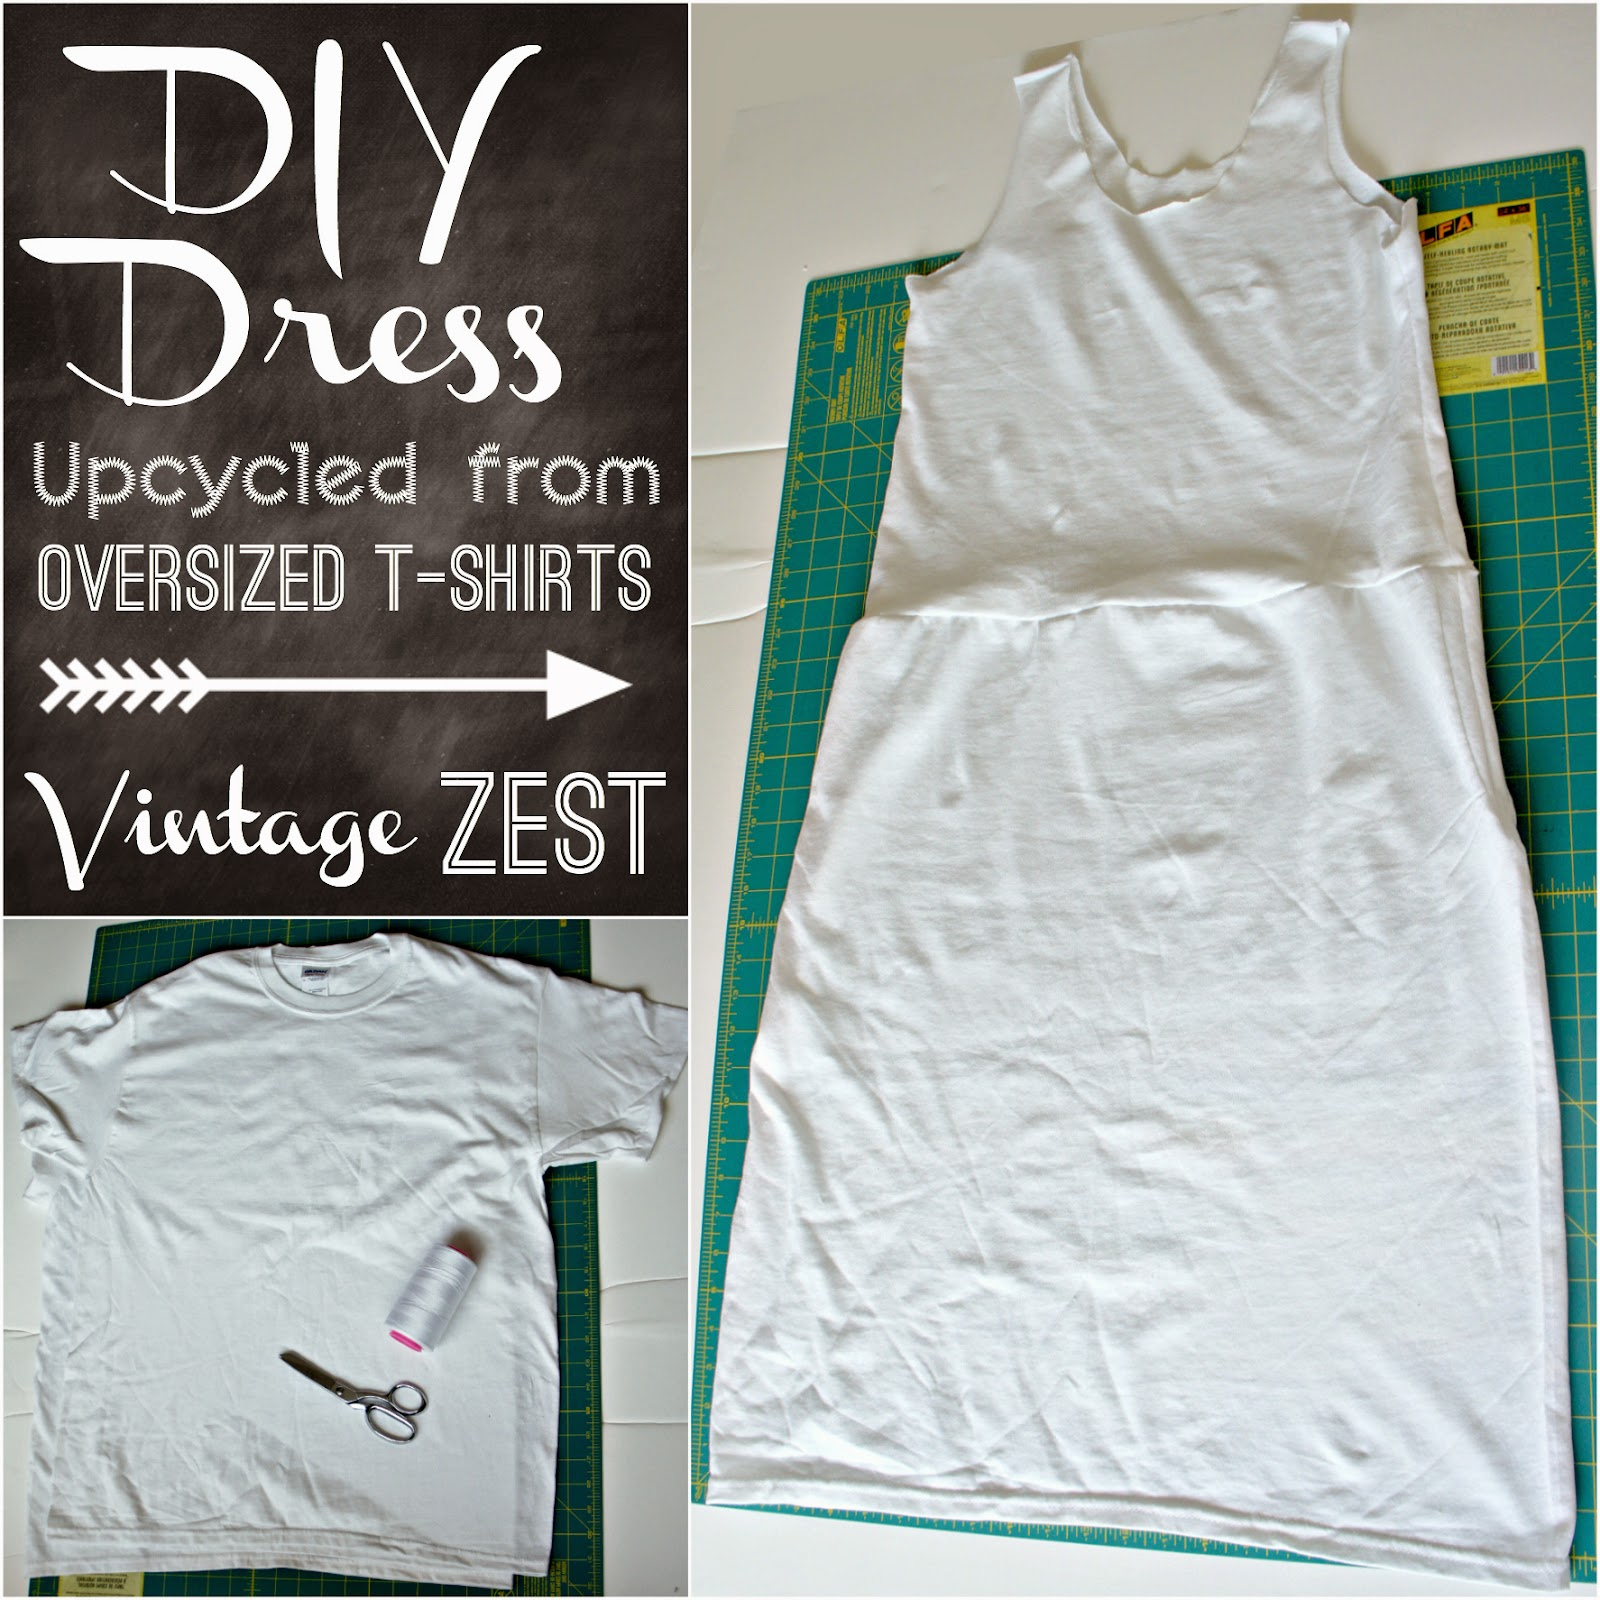 How to: DIY a Dress Upcycled from Oversized T-shirts ...